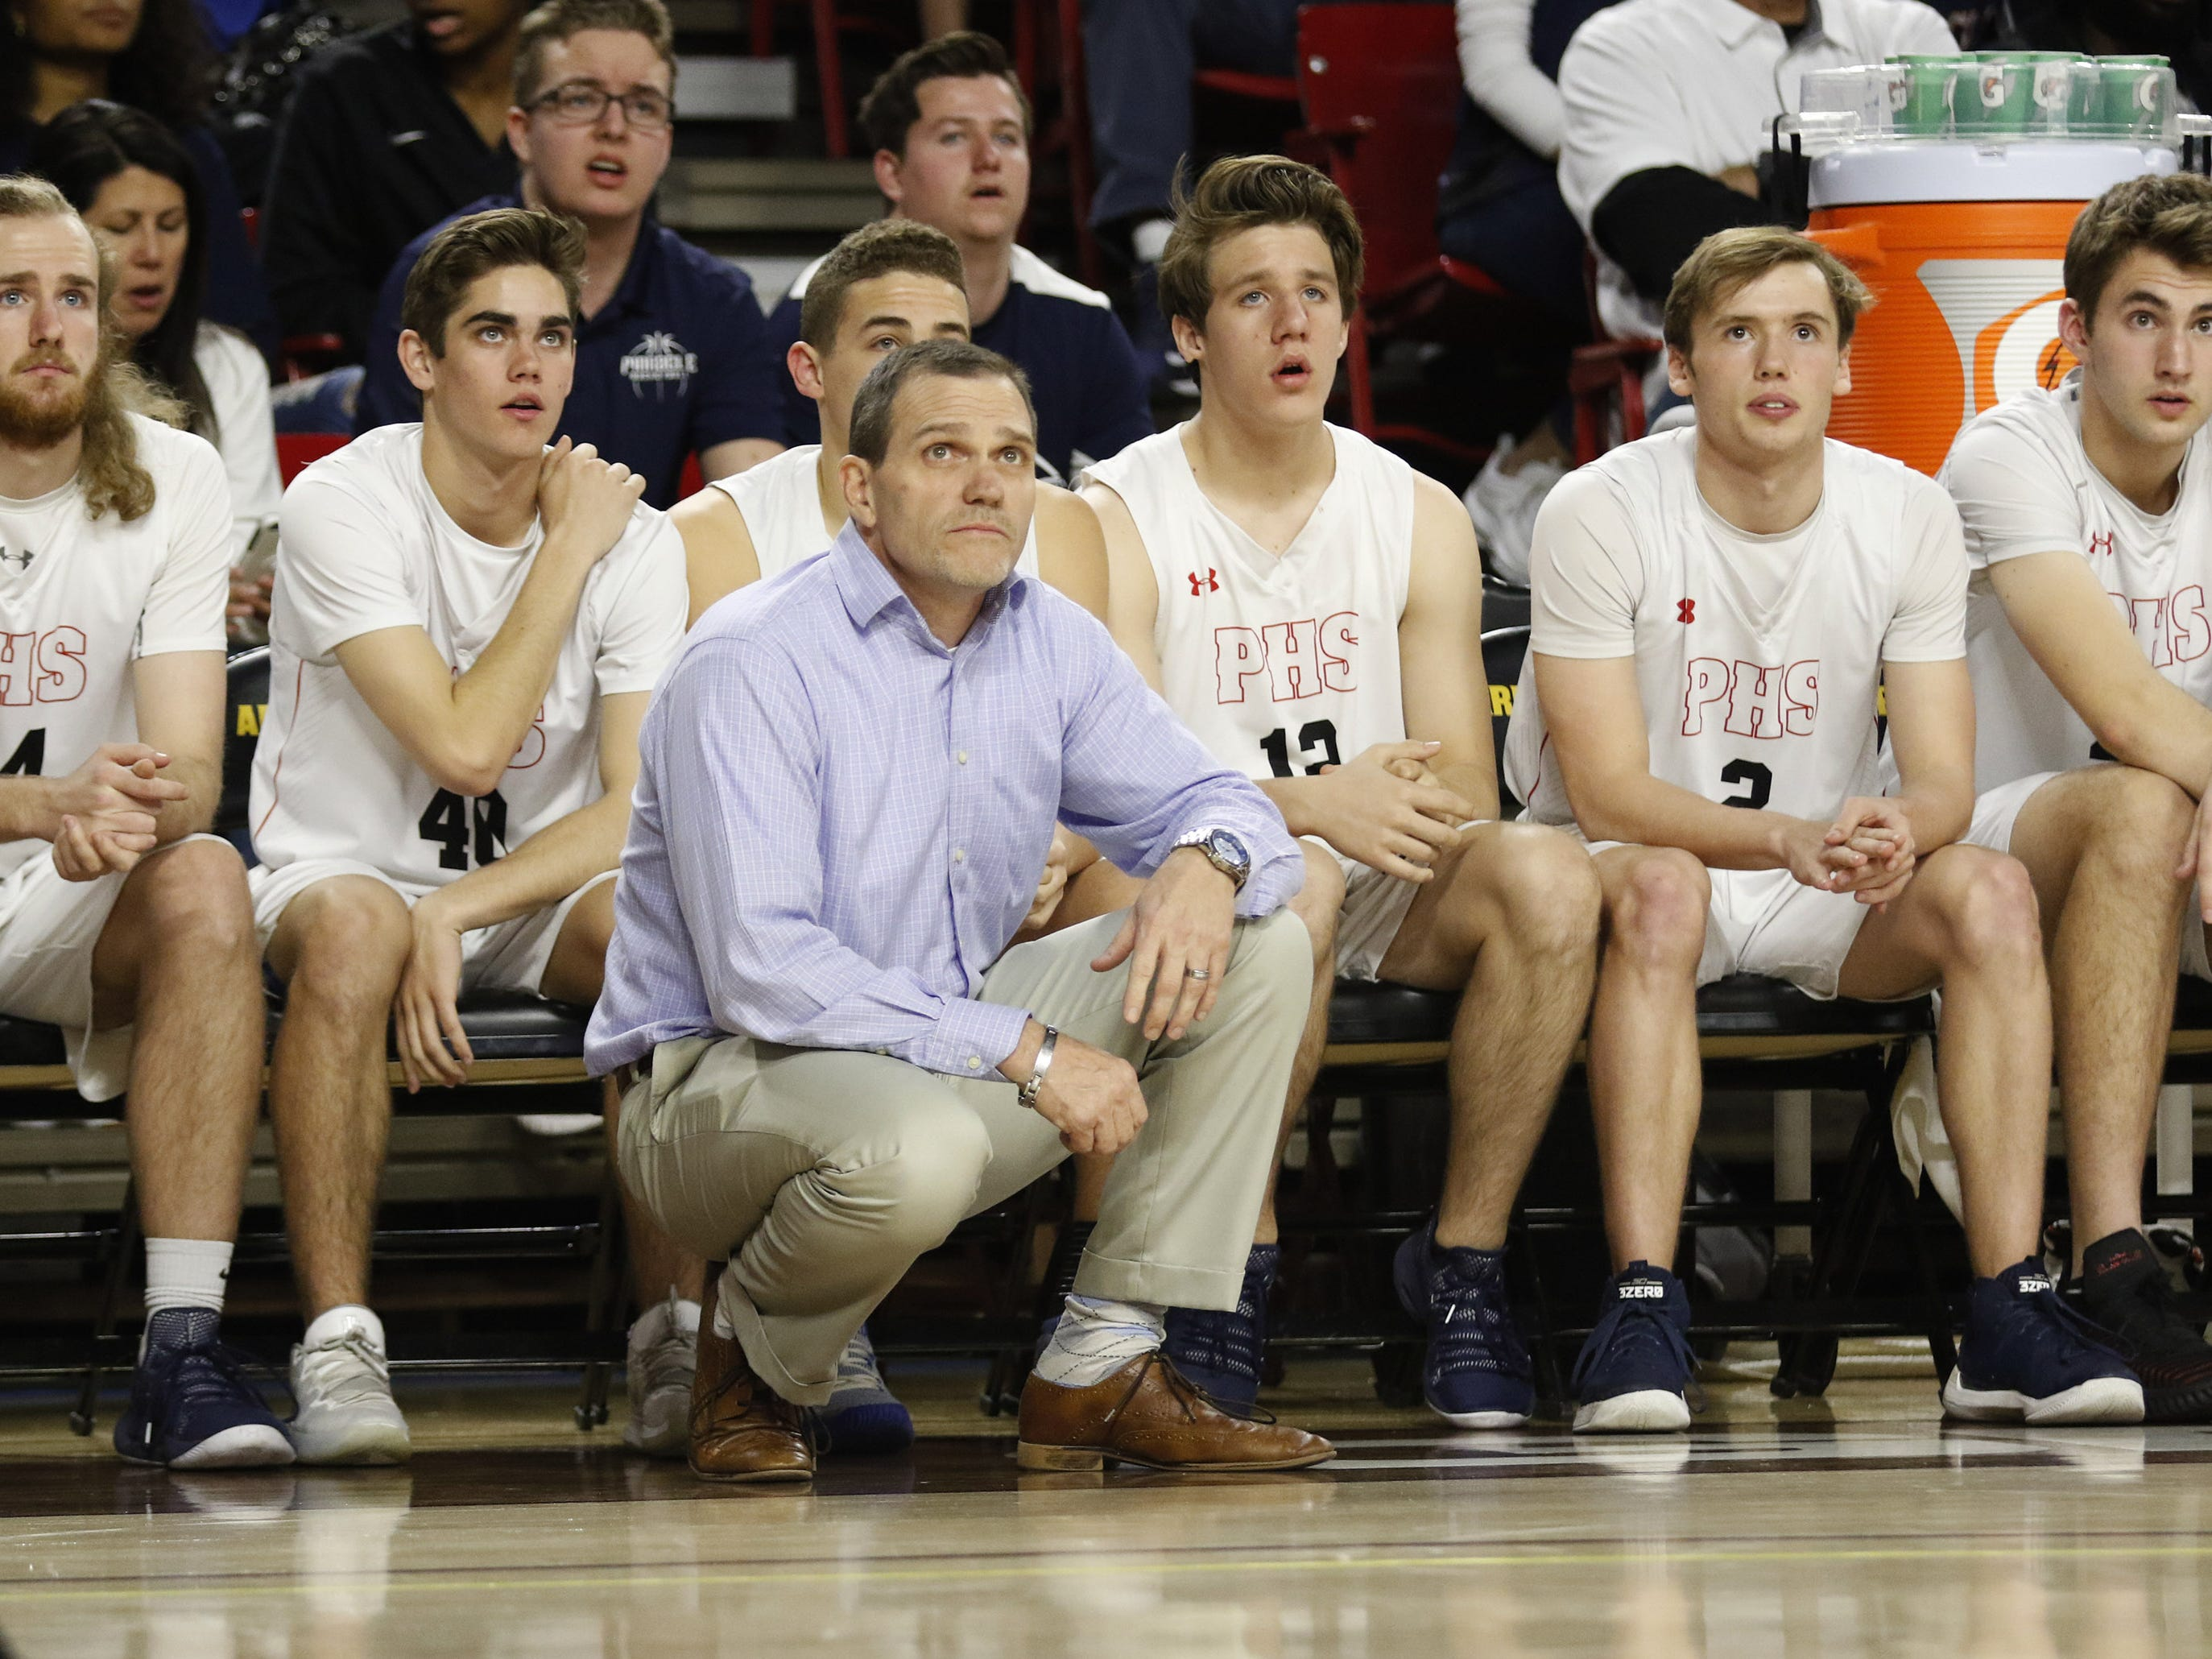 Pinnacle head coach Charles Wilde watches his team late in the game against Chaparral during the 6A Boys State Championship at Wells Fargo Arena in Tempe Tuesday, Feb 26, 2019.